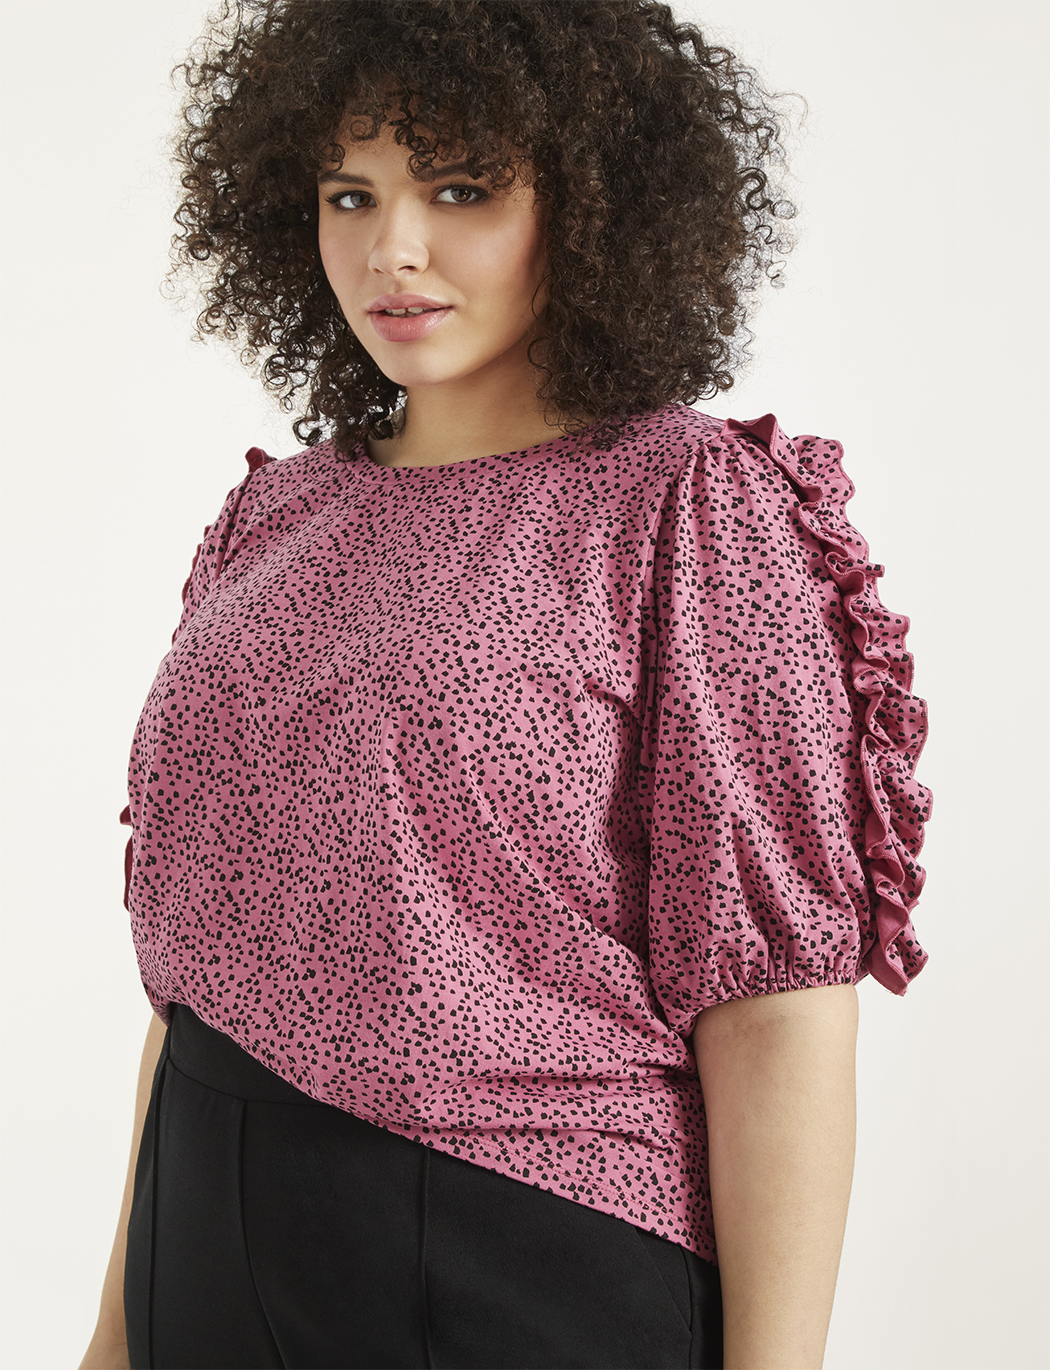 Puff Sleeve Top with Ruffle